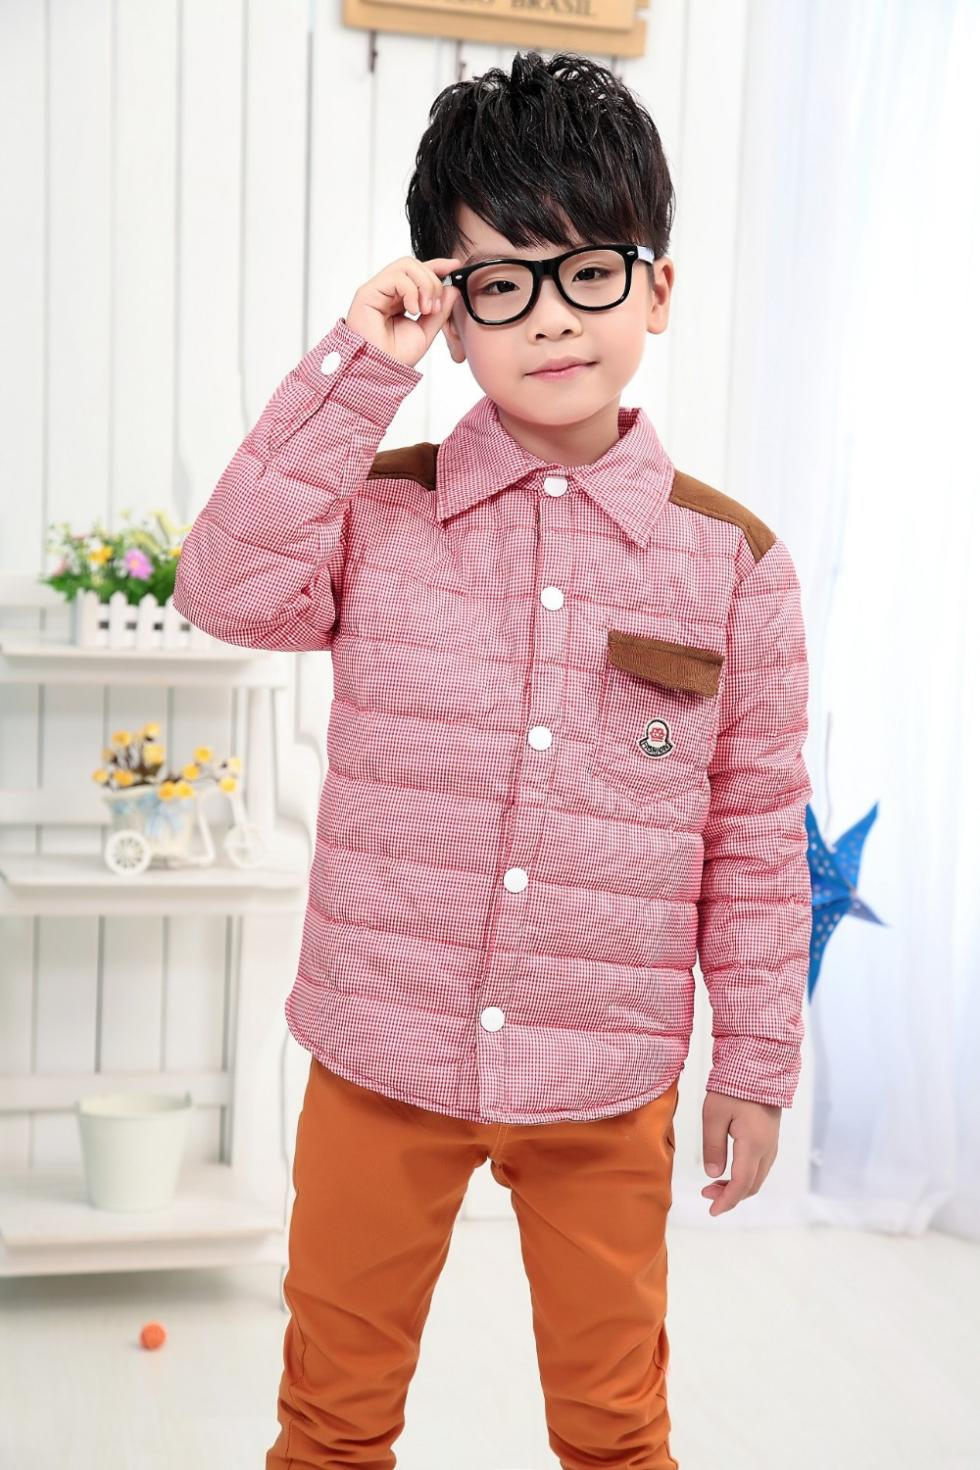 If you are looking for private label kids wholesale clothing that is going to sell like hot cakes at the top prices, then our collection is the best for the purpose. We design it with the best fabrics and the latest high couture fashion, making us the one and only of our kind amongst all kids clothing manufacturers.